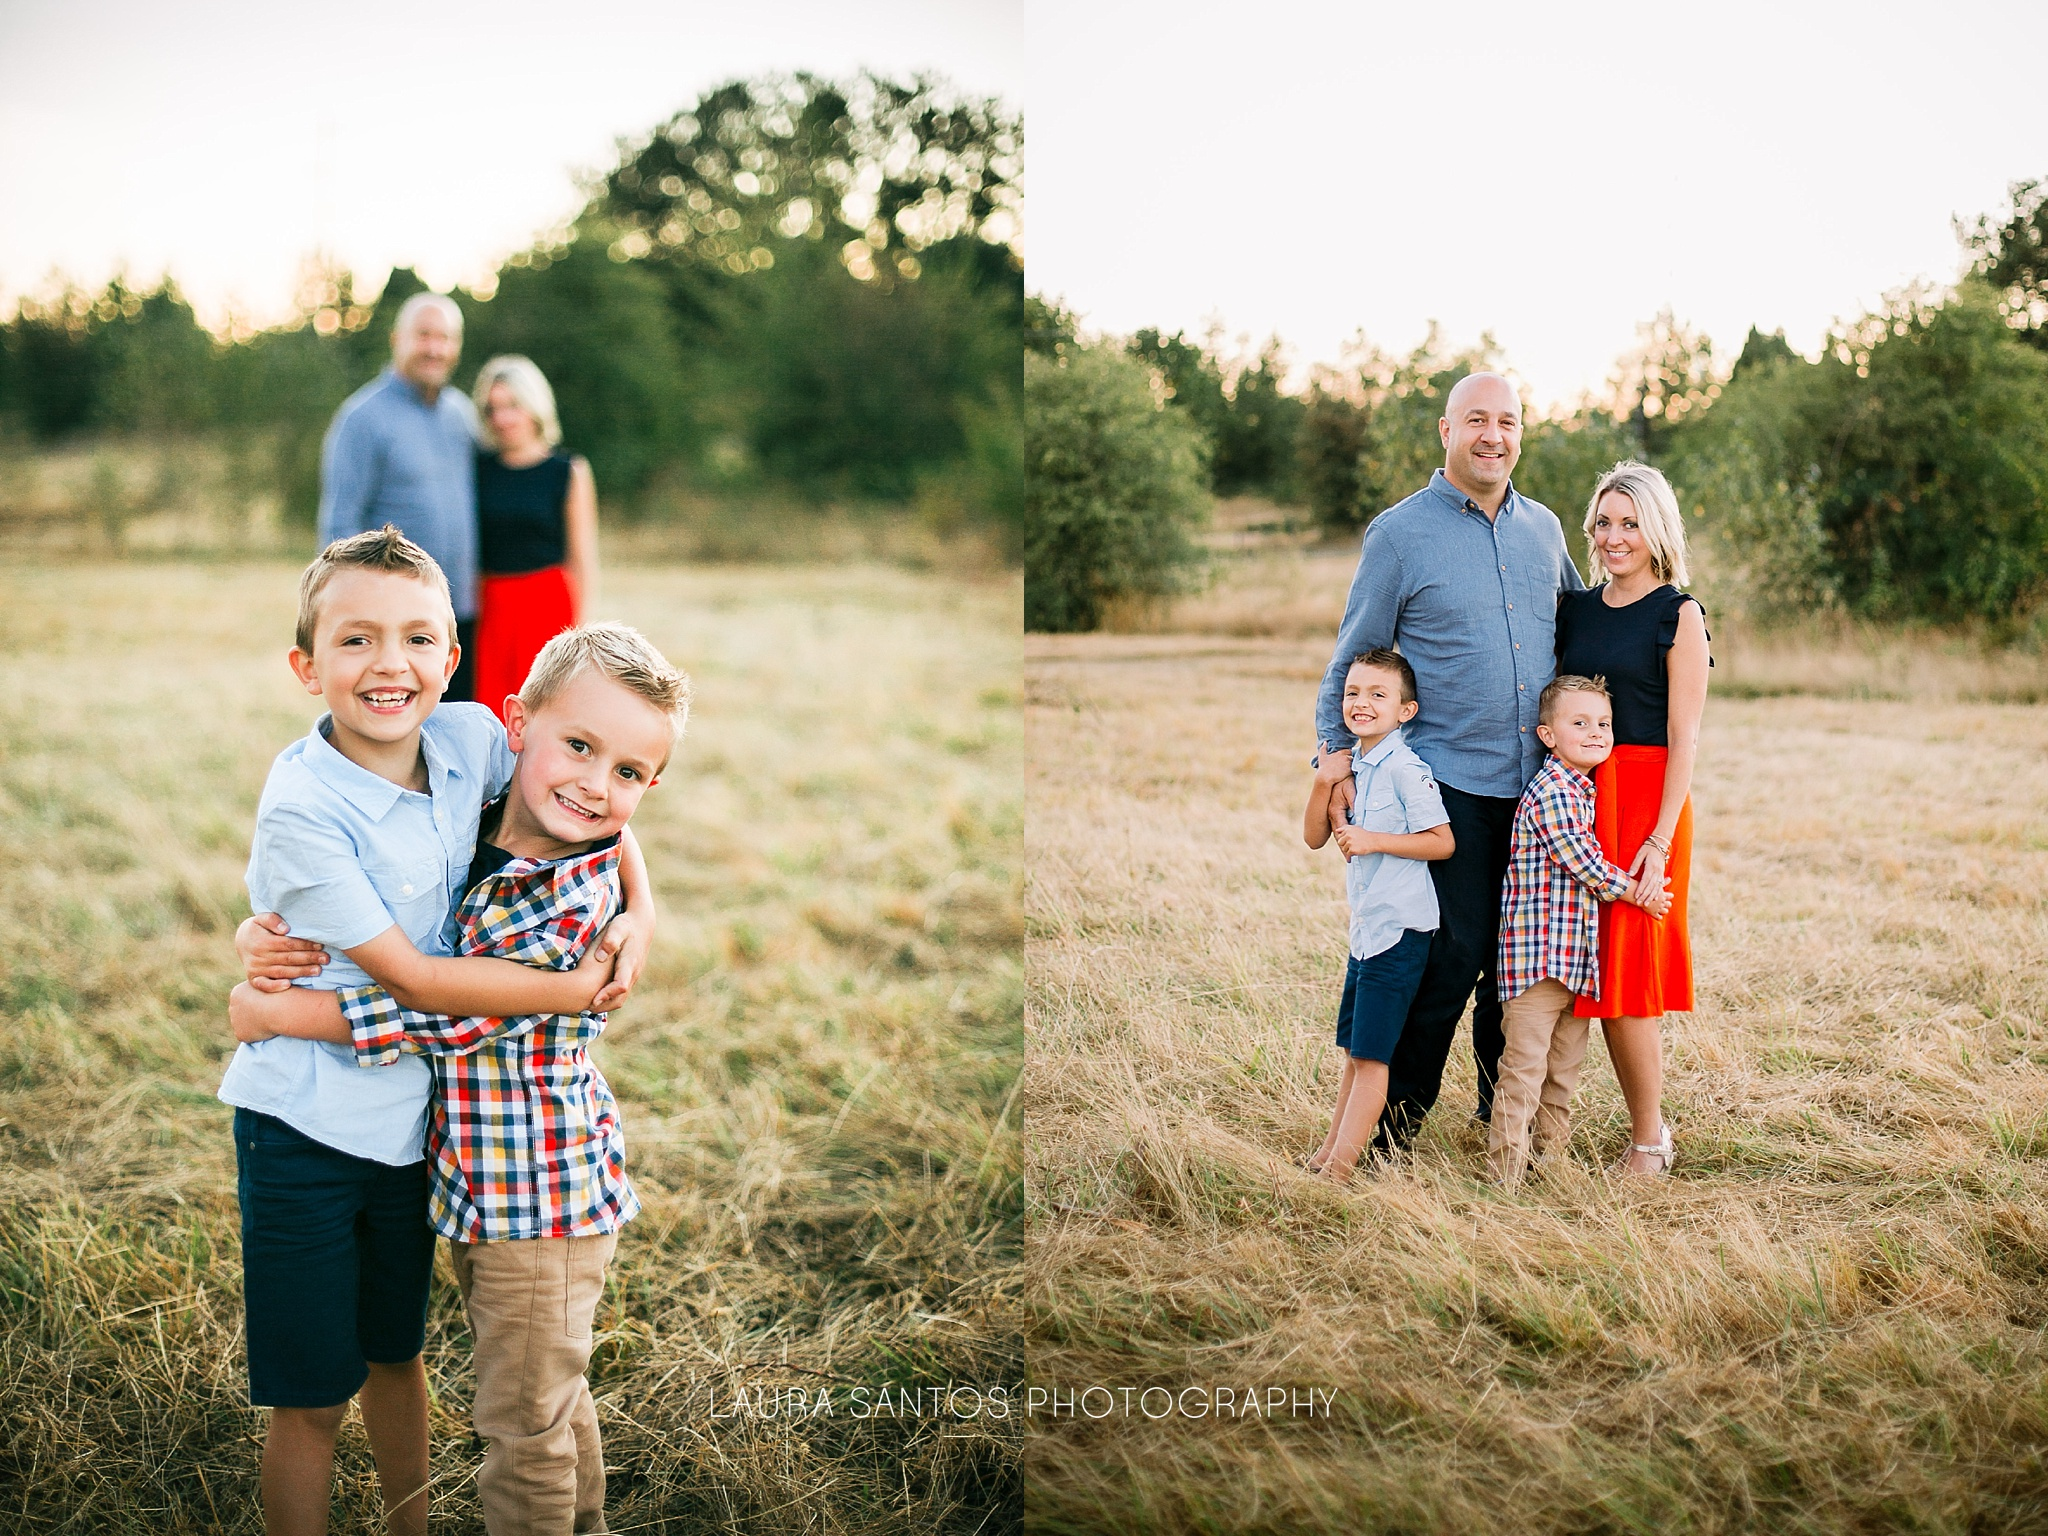 Portland OR Family Photograher Laura Santos Photography_0194.jpg